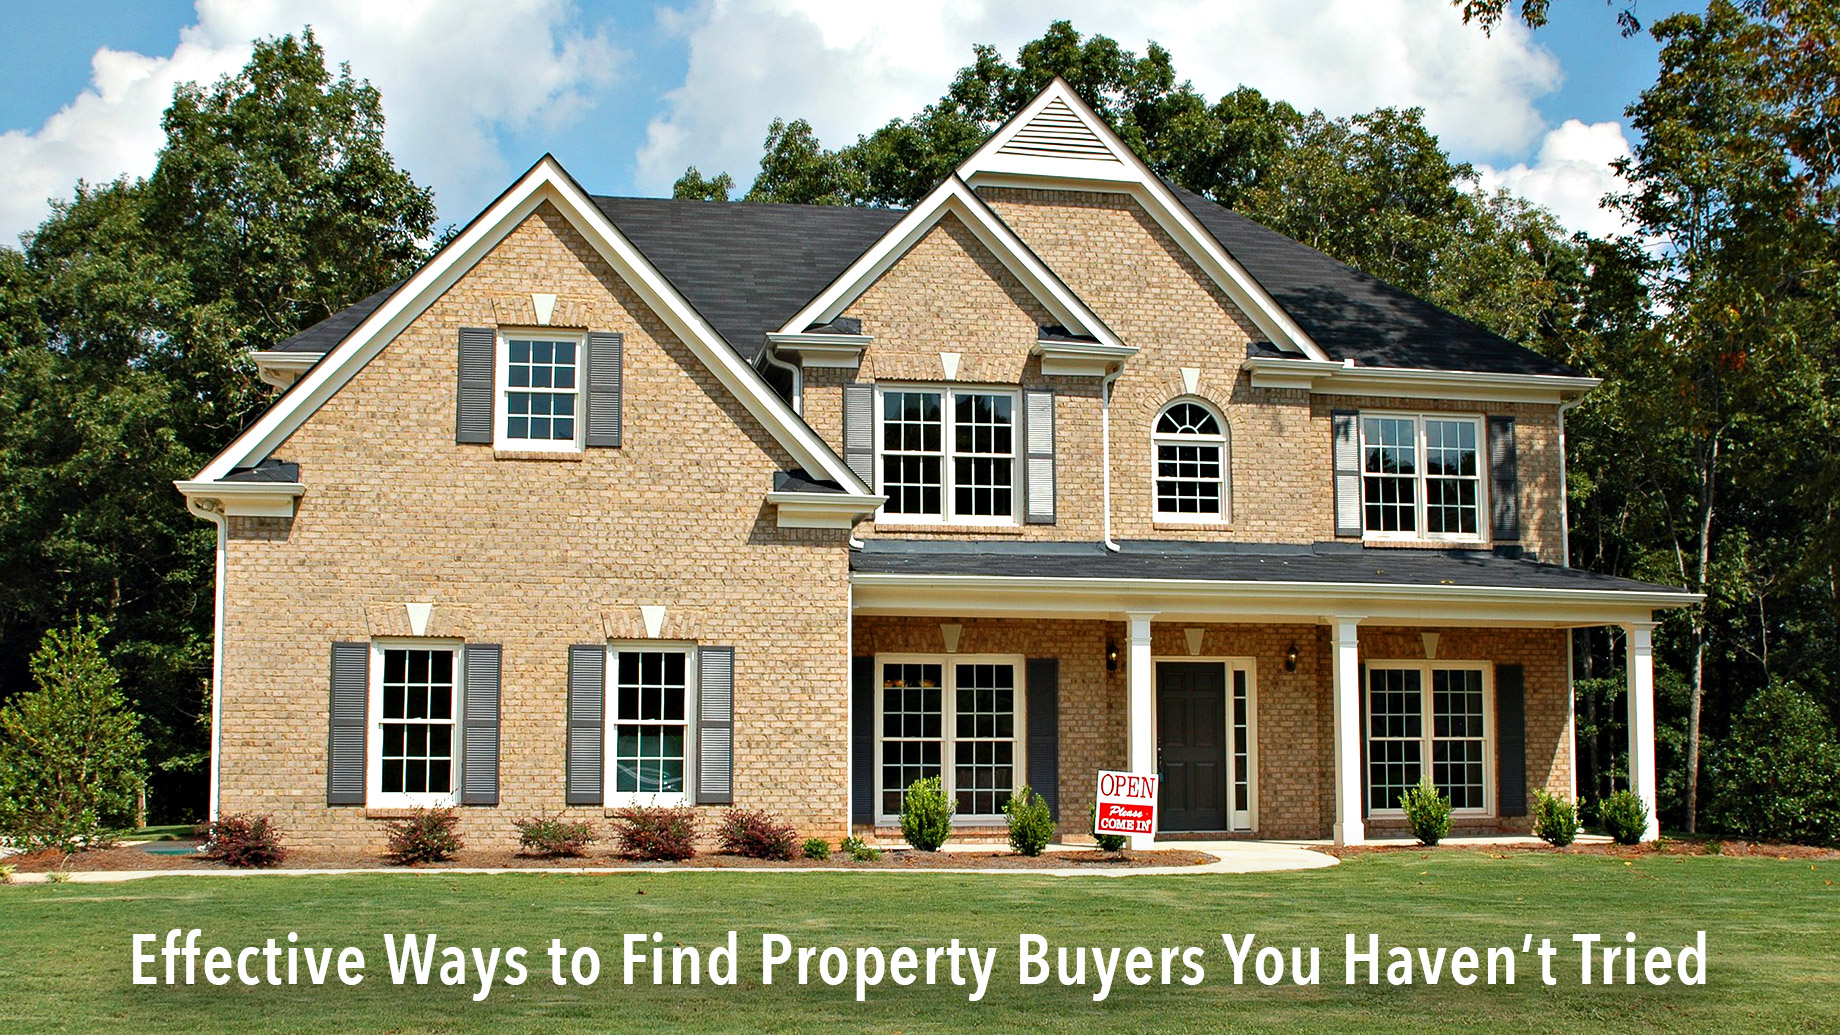 Effective Ways to Find Property Buyers You Haven't Tried